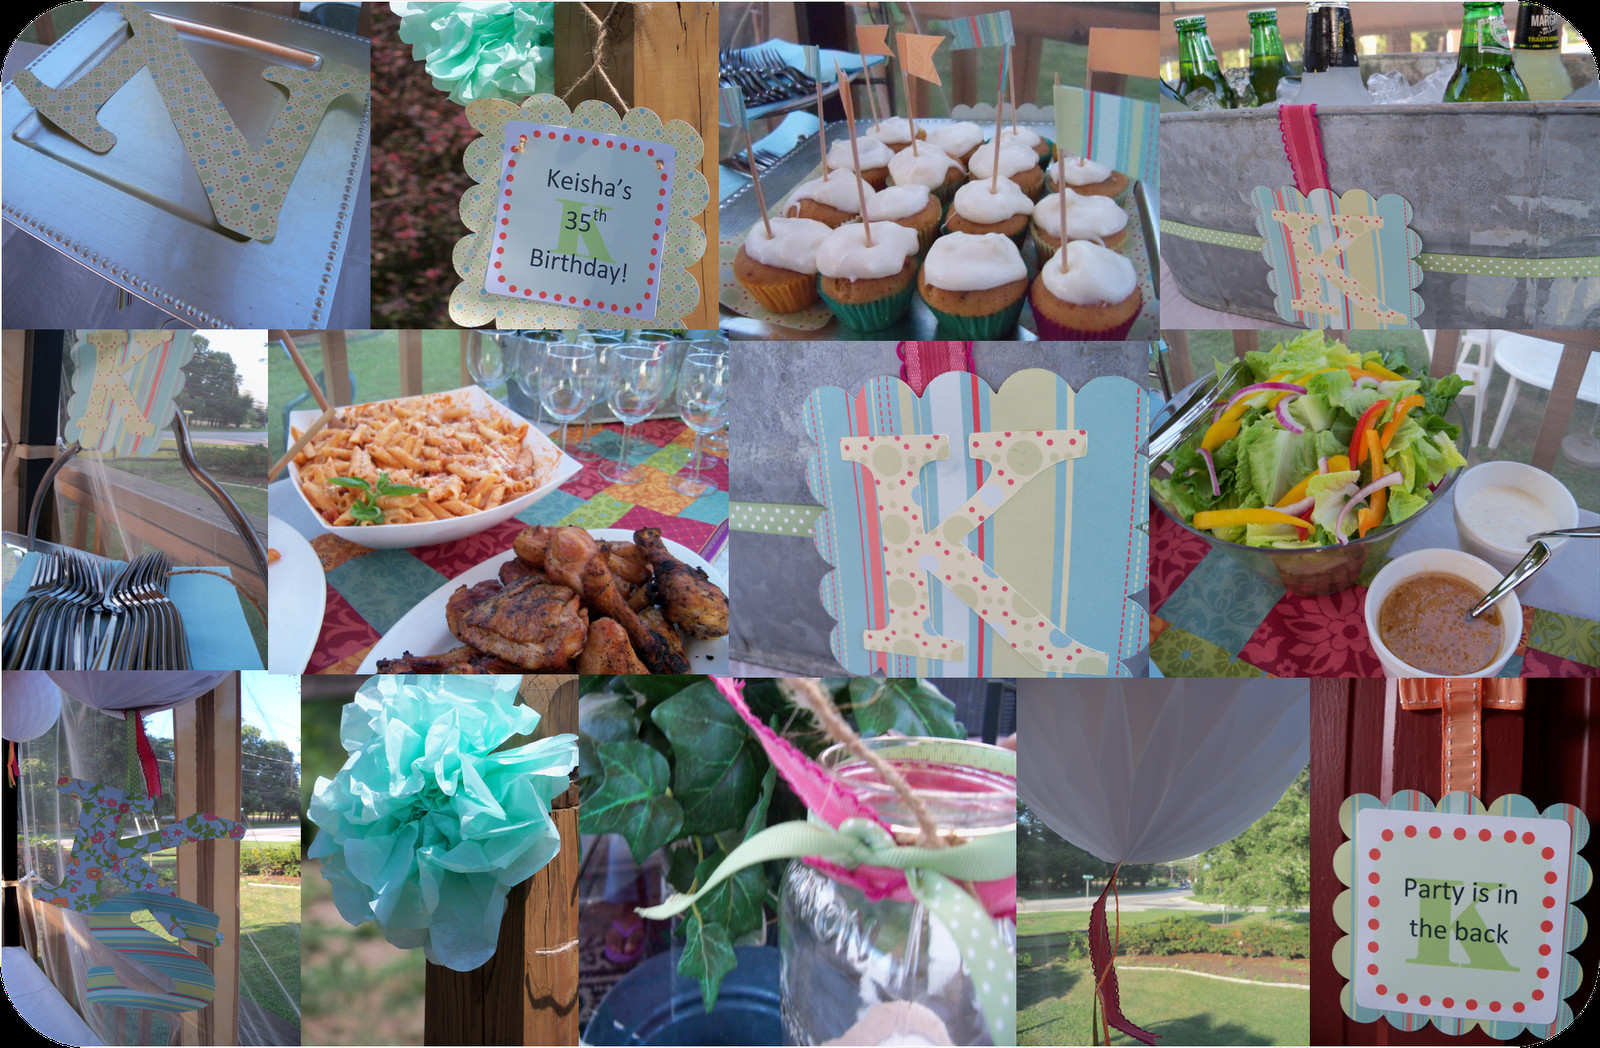 Best ideas about 35th Birthday Decorations . Save or Pin Cupcake Wishes & Birthday Dreams August 2010 Now.